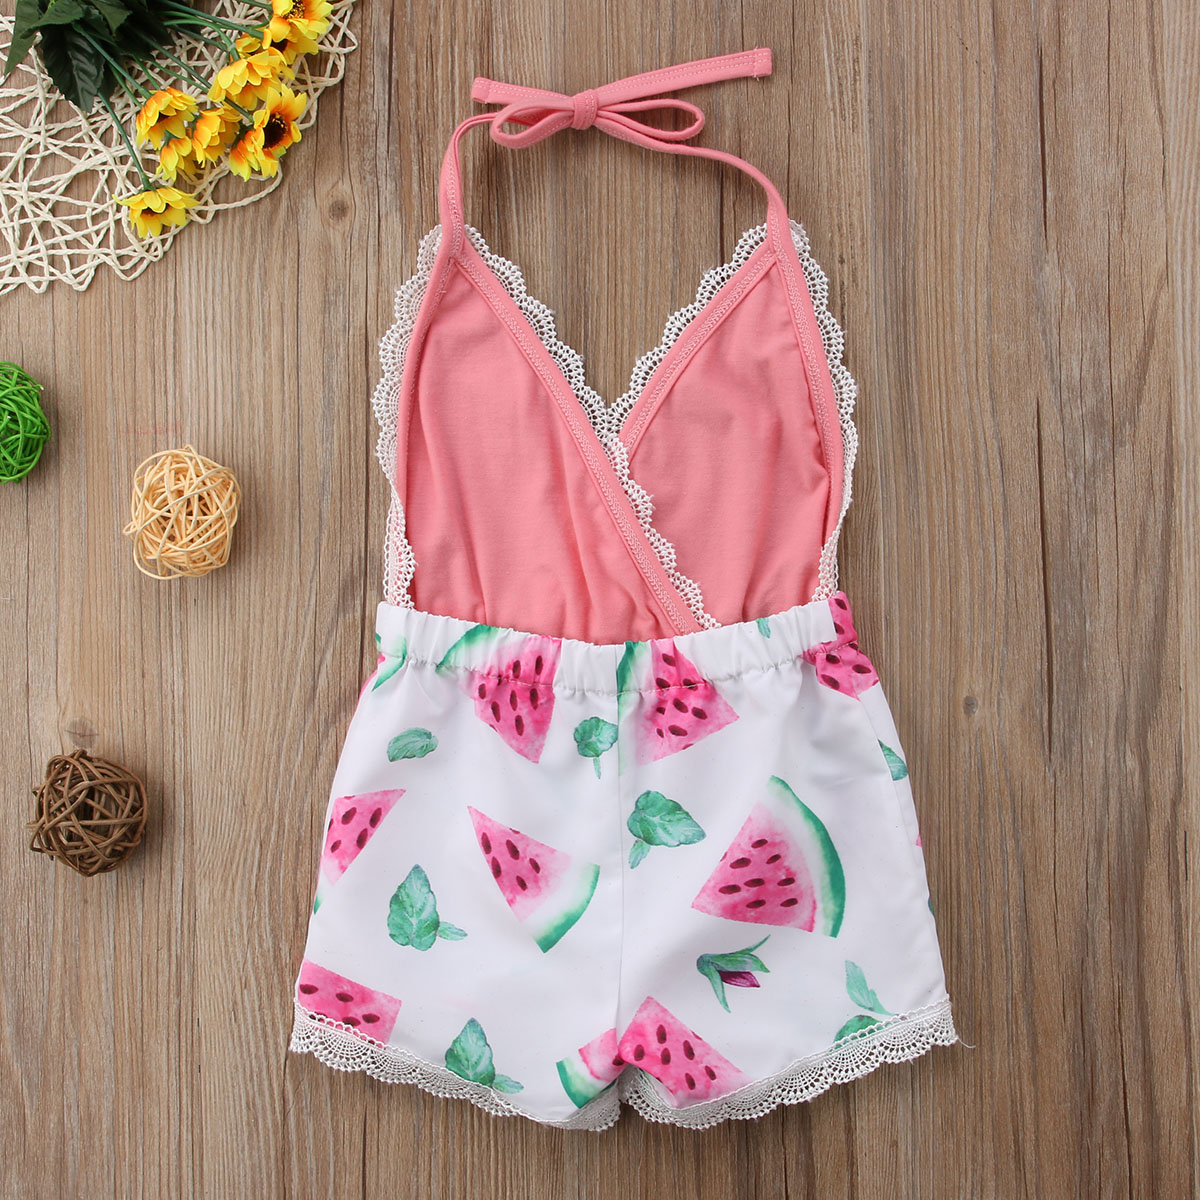 6c5c7ff0cb45 2018 Newborn Toddler Kids Baby Girl Romper Neck Sunflower Watermelon Jumpsuit  Outfits Sunsuit Cute Summer Clothes-in Rompers from Mother   Kids on ...